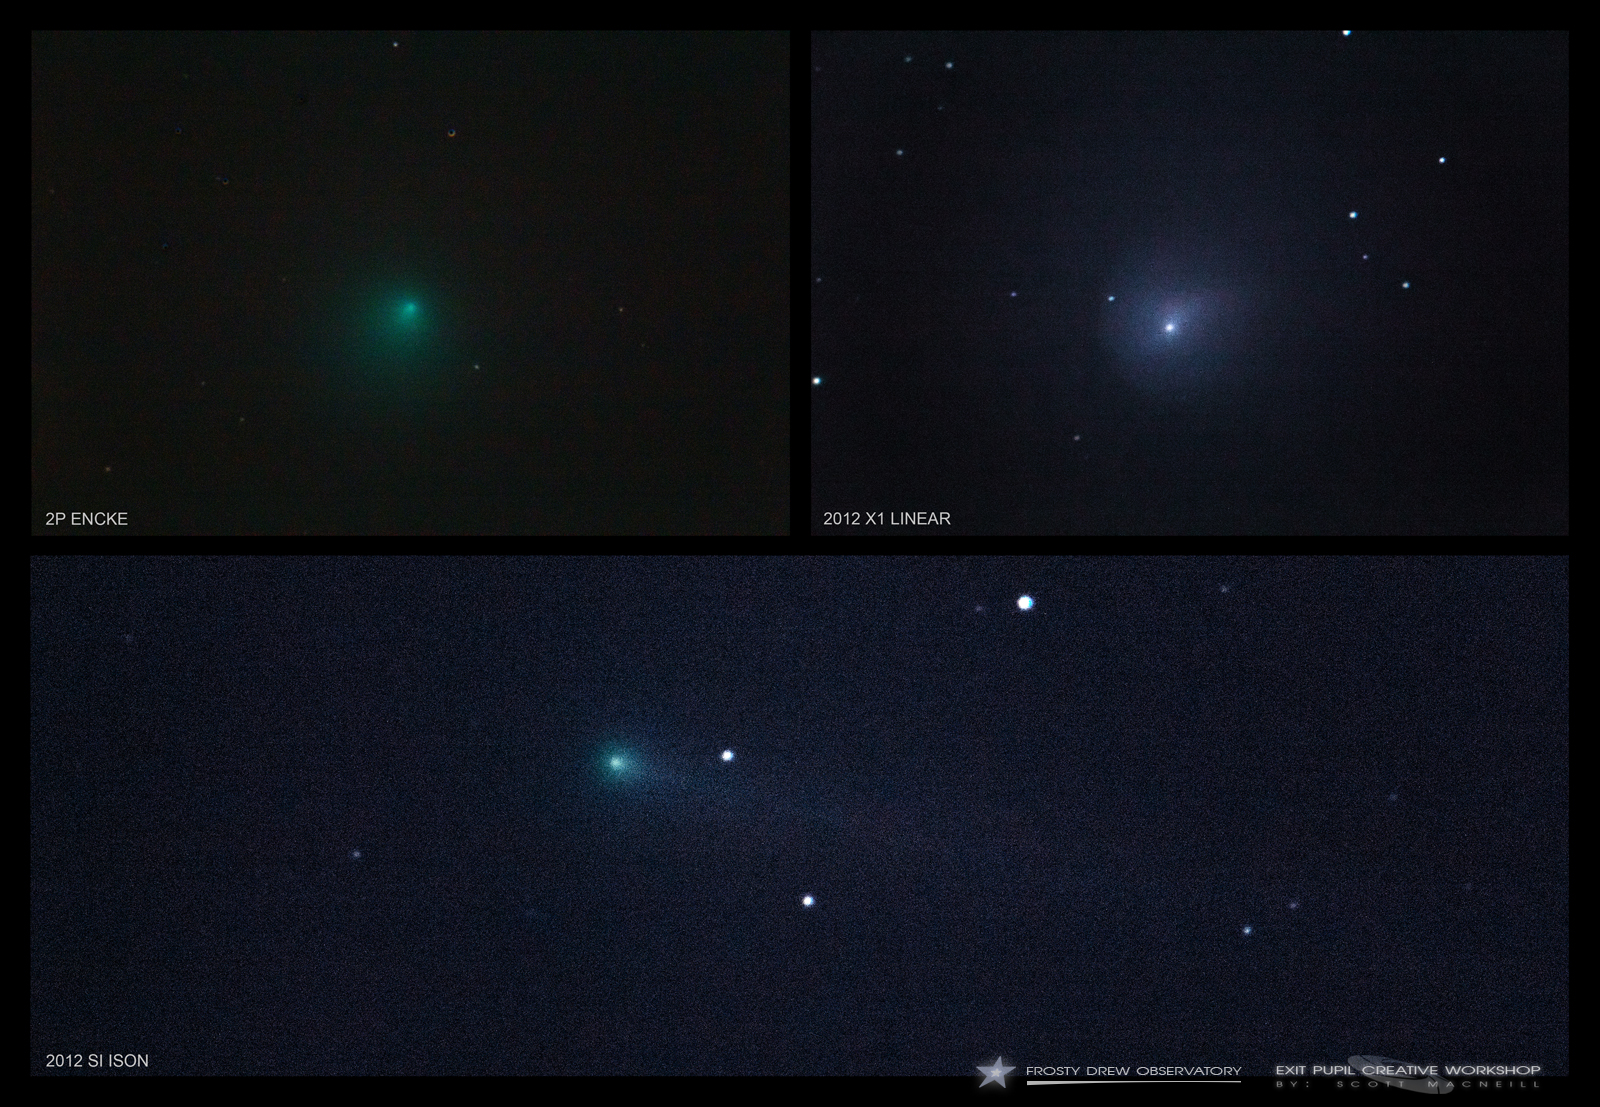 Comet Encke, Comet LINEAR, and Comet ISON by Scott MacNeill